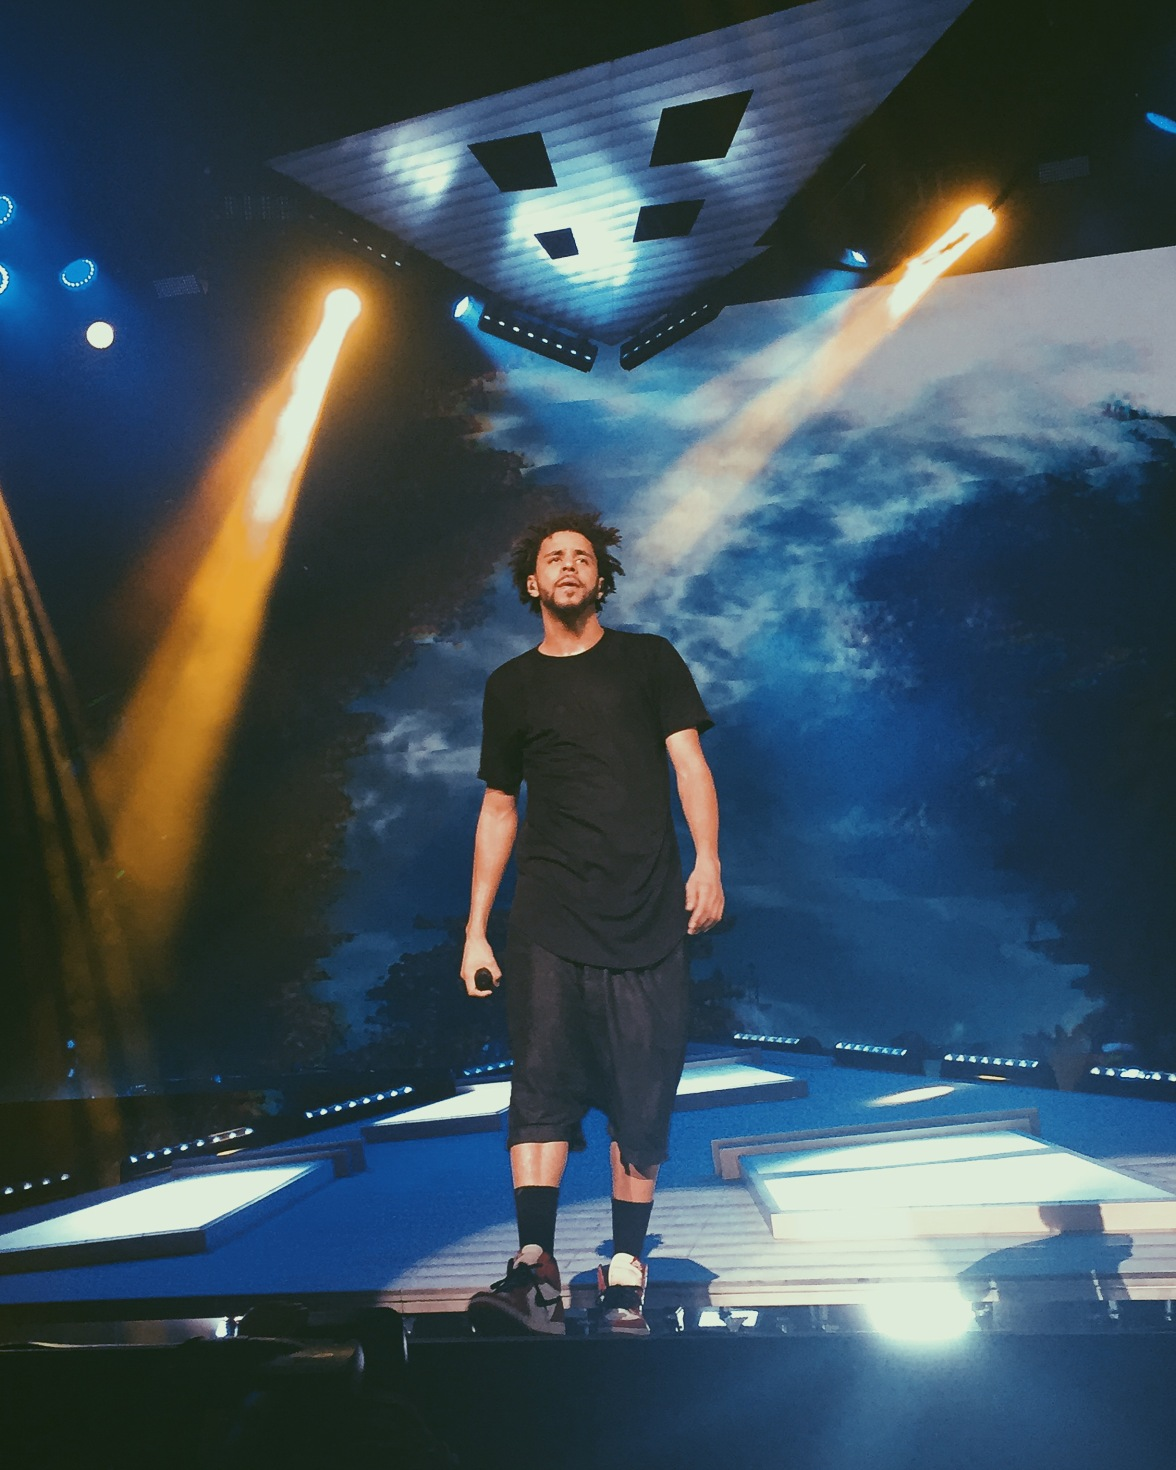 J. Cole @ Jiffy Lube Live, VA 2015